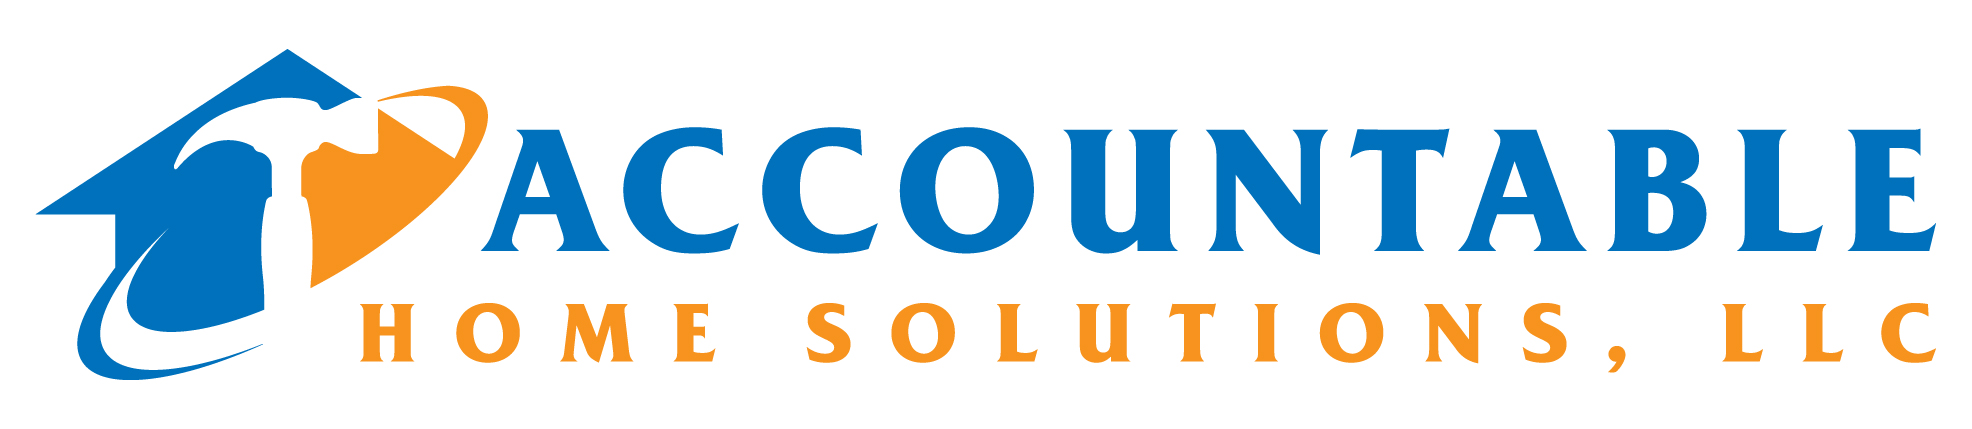 Accountable Home Solutions, LLC